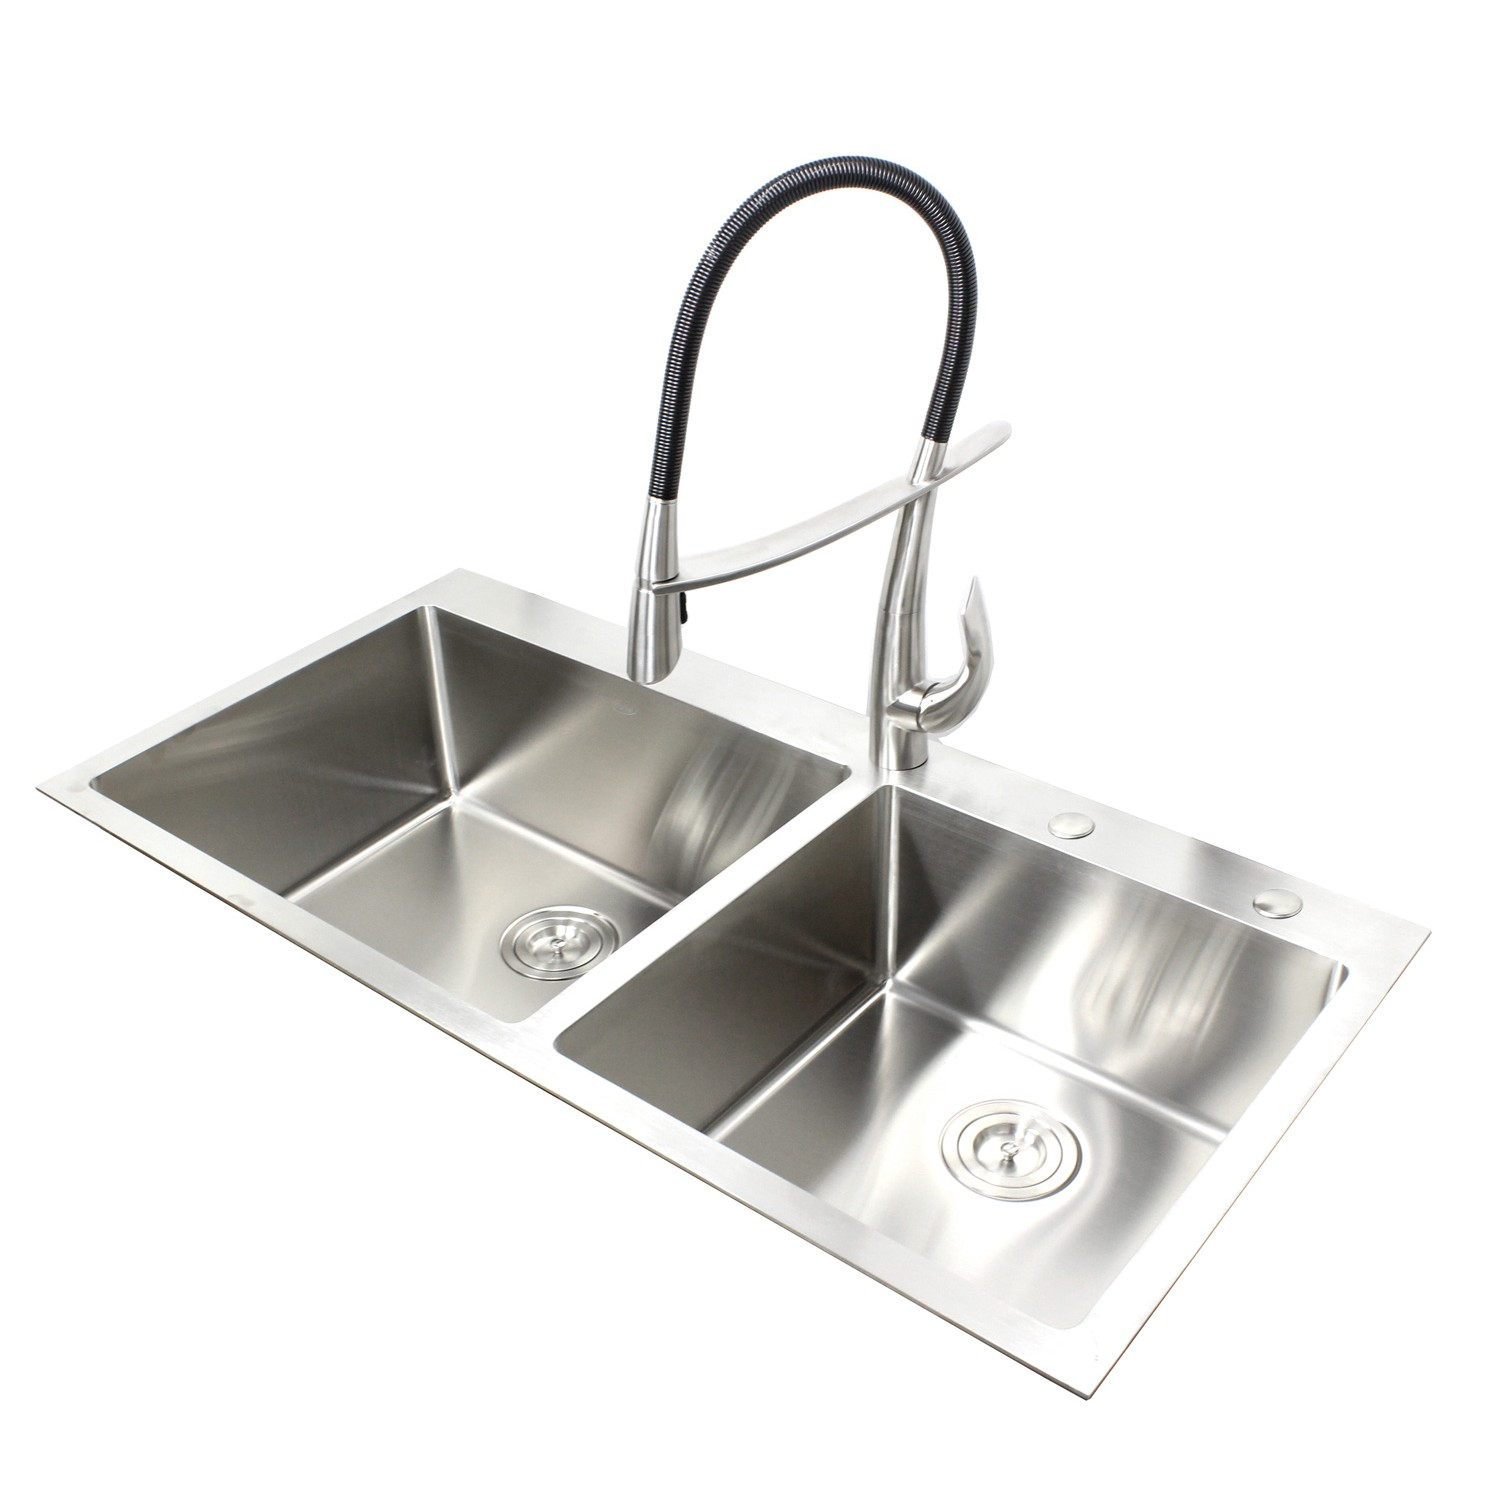 43 Inch Top-Mount / Drop-In Stainless Steel Double Bowl